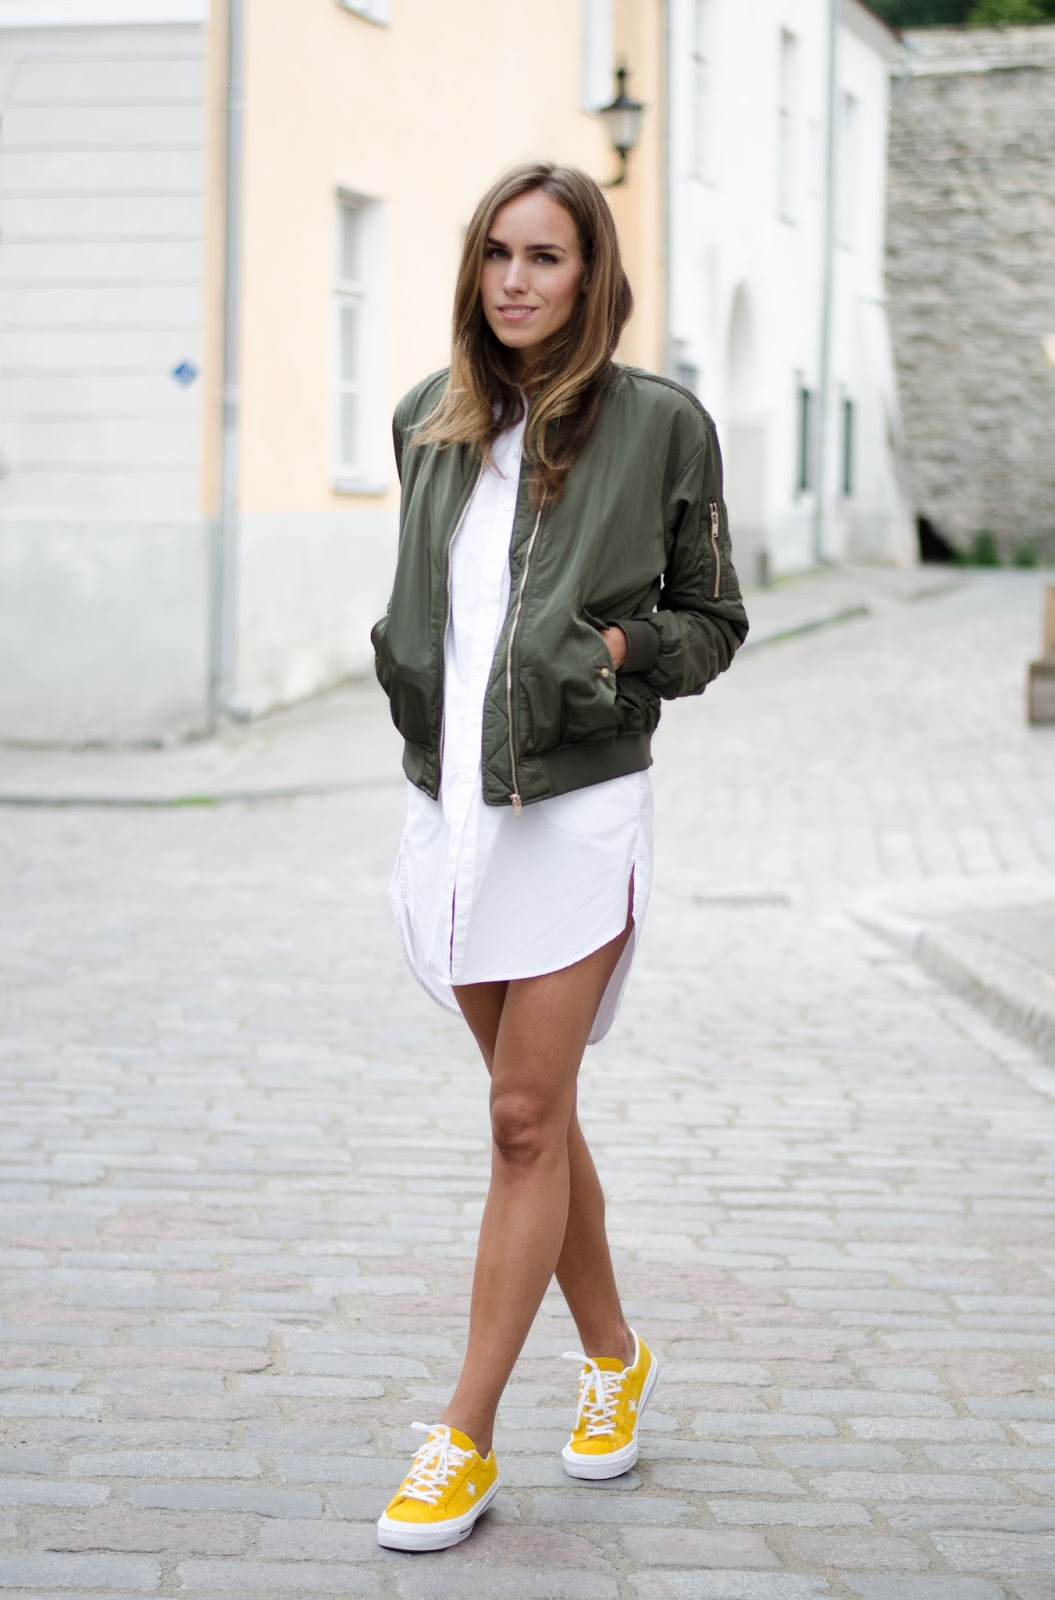 bomber jacket shirt dress yellow sneakers outfit